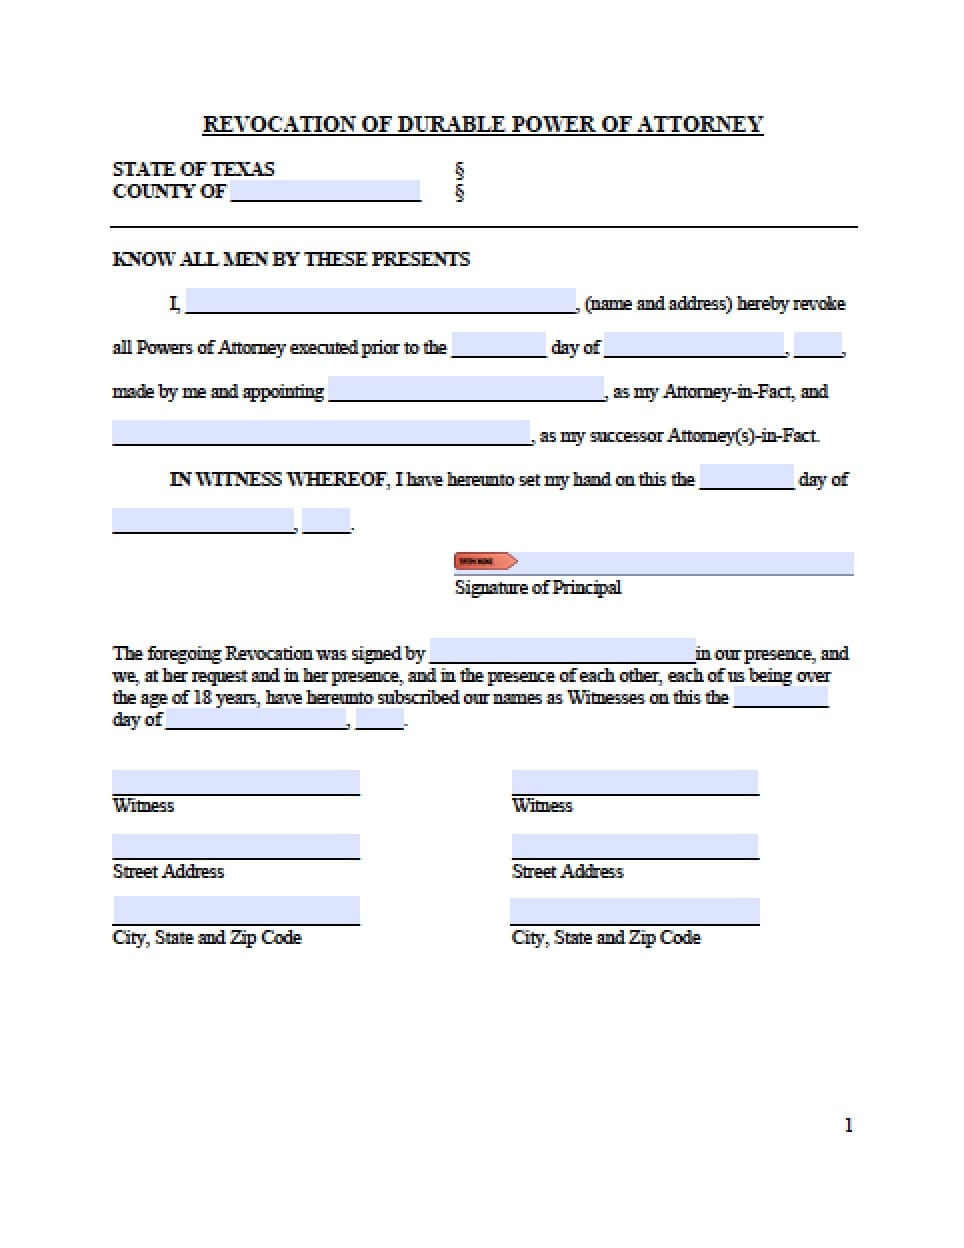 revoke power of attorney form  Texas Revocation Power of Attorney Form - Power of Attorney ...